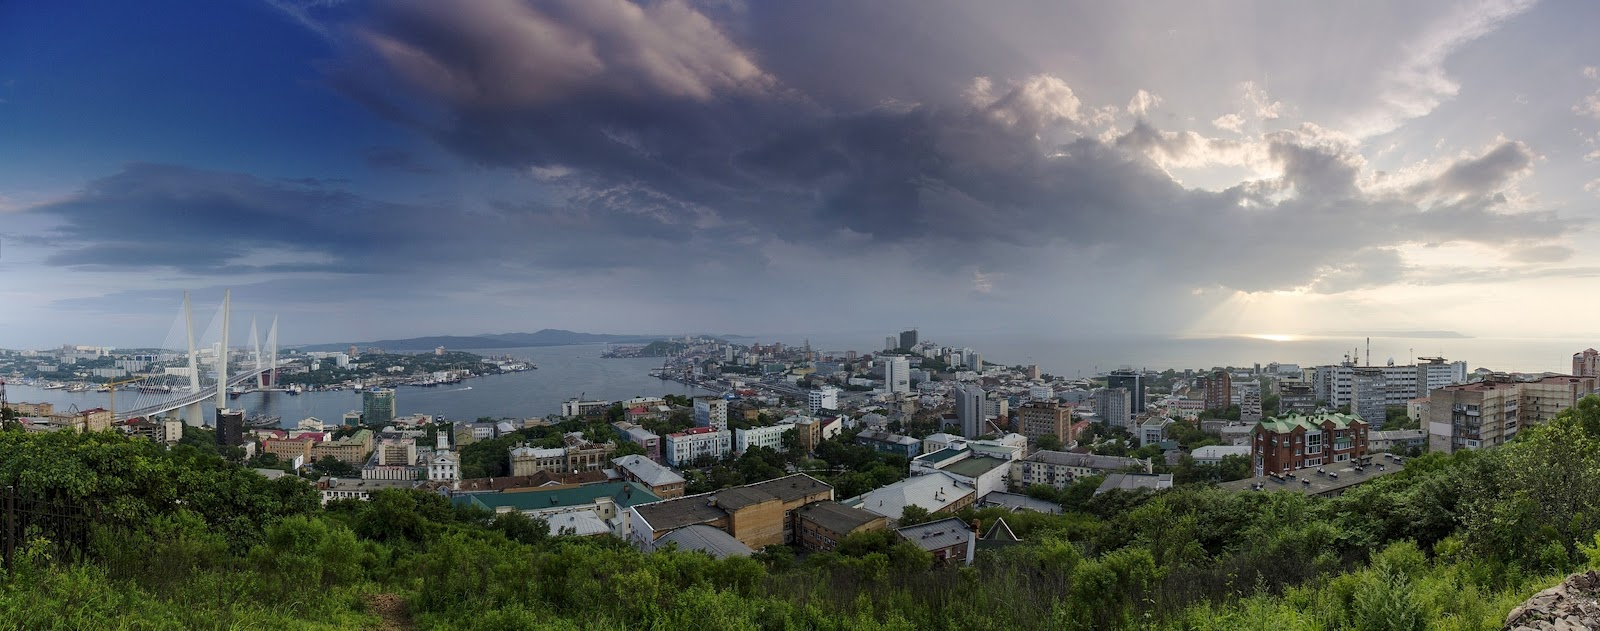 Vladivostok Russia  city pictures gallery : ... Владивосток . A voyage to Vladivostok, Russia, Eurasia